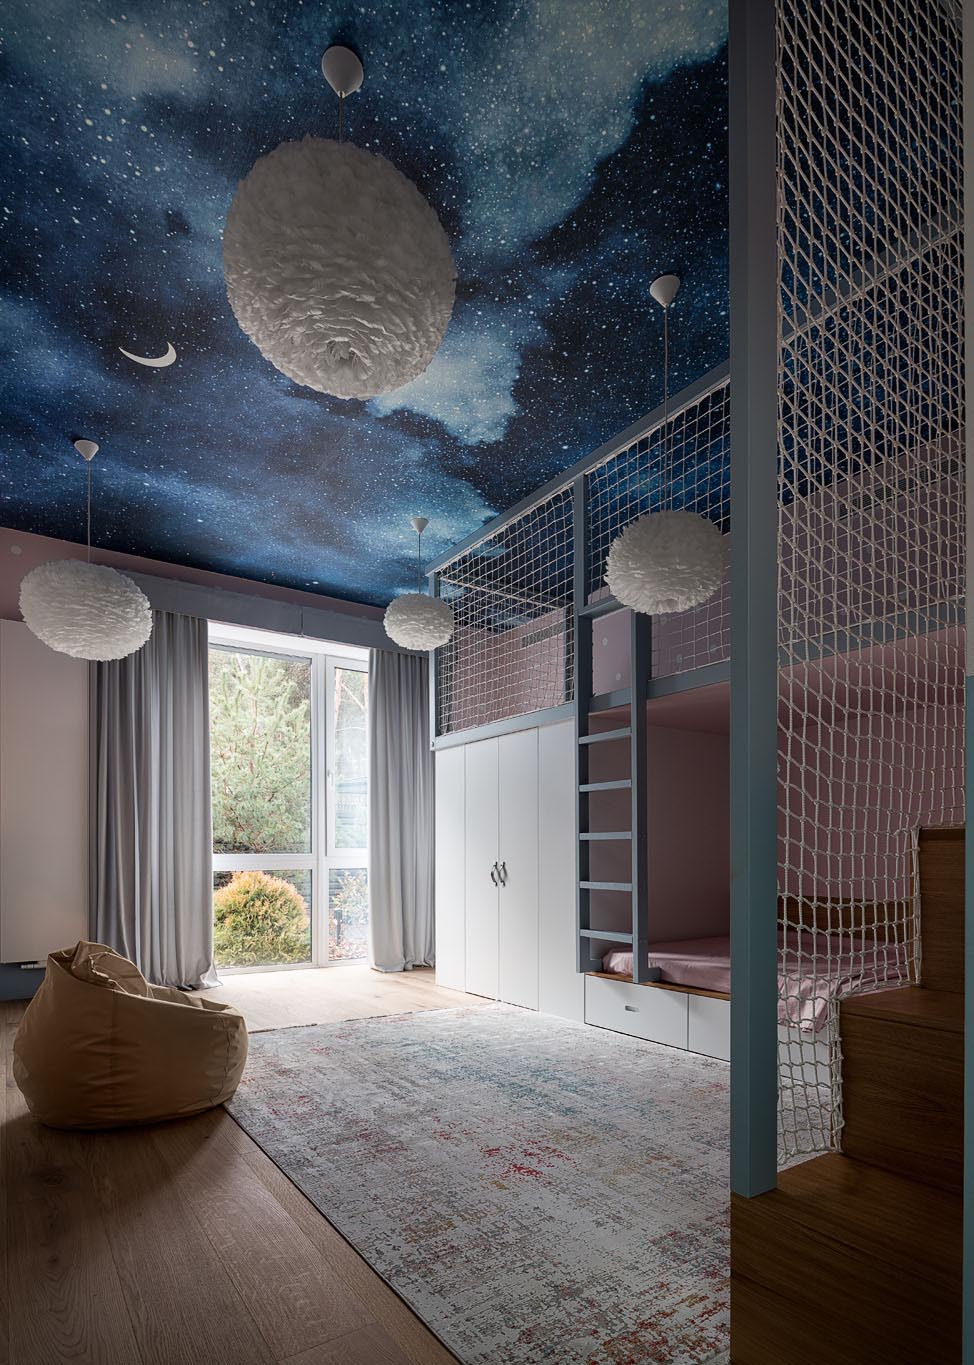 The bedroom ceiling of this kid's room has been decorated with a night sky mural and delicate white pendant lights of different sizes.